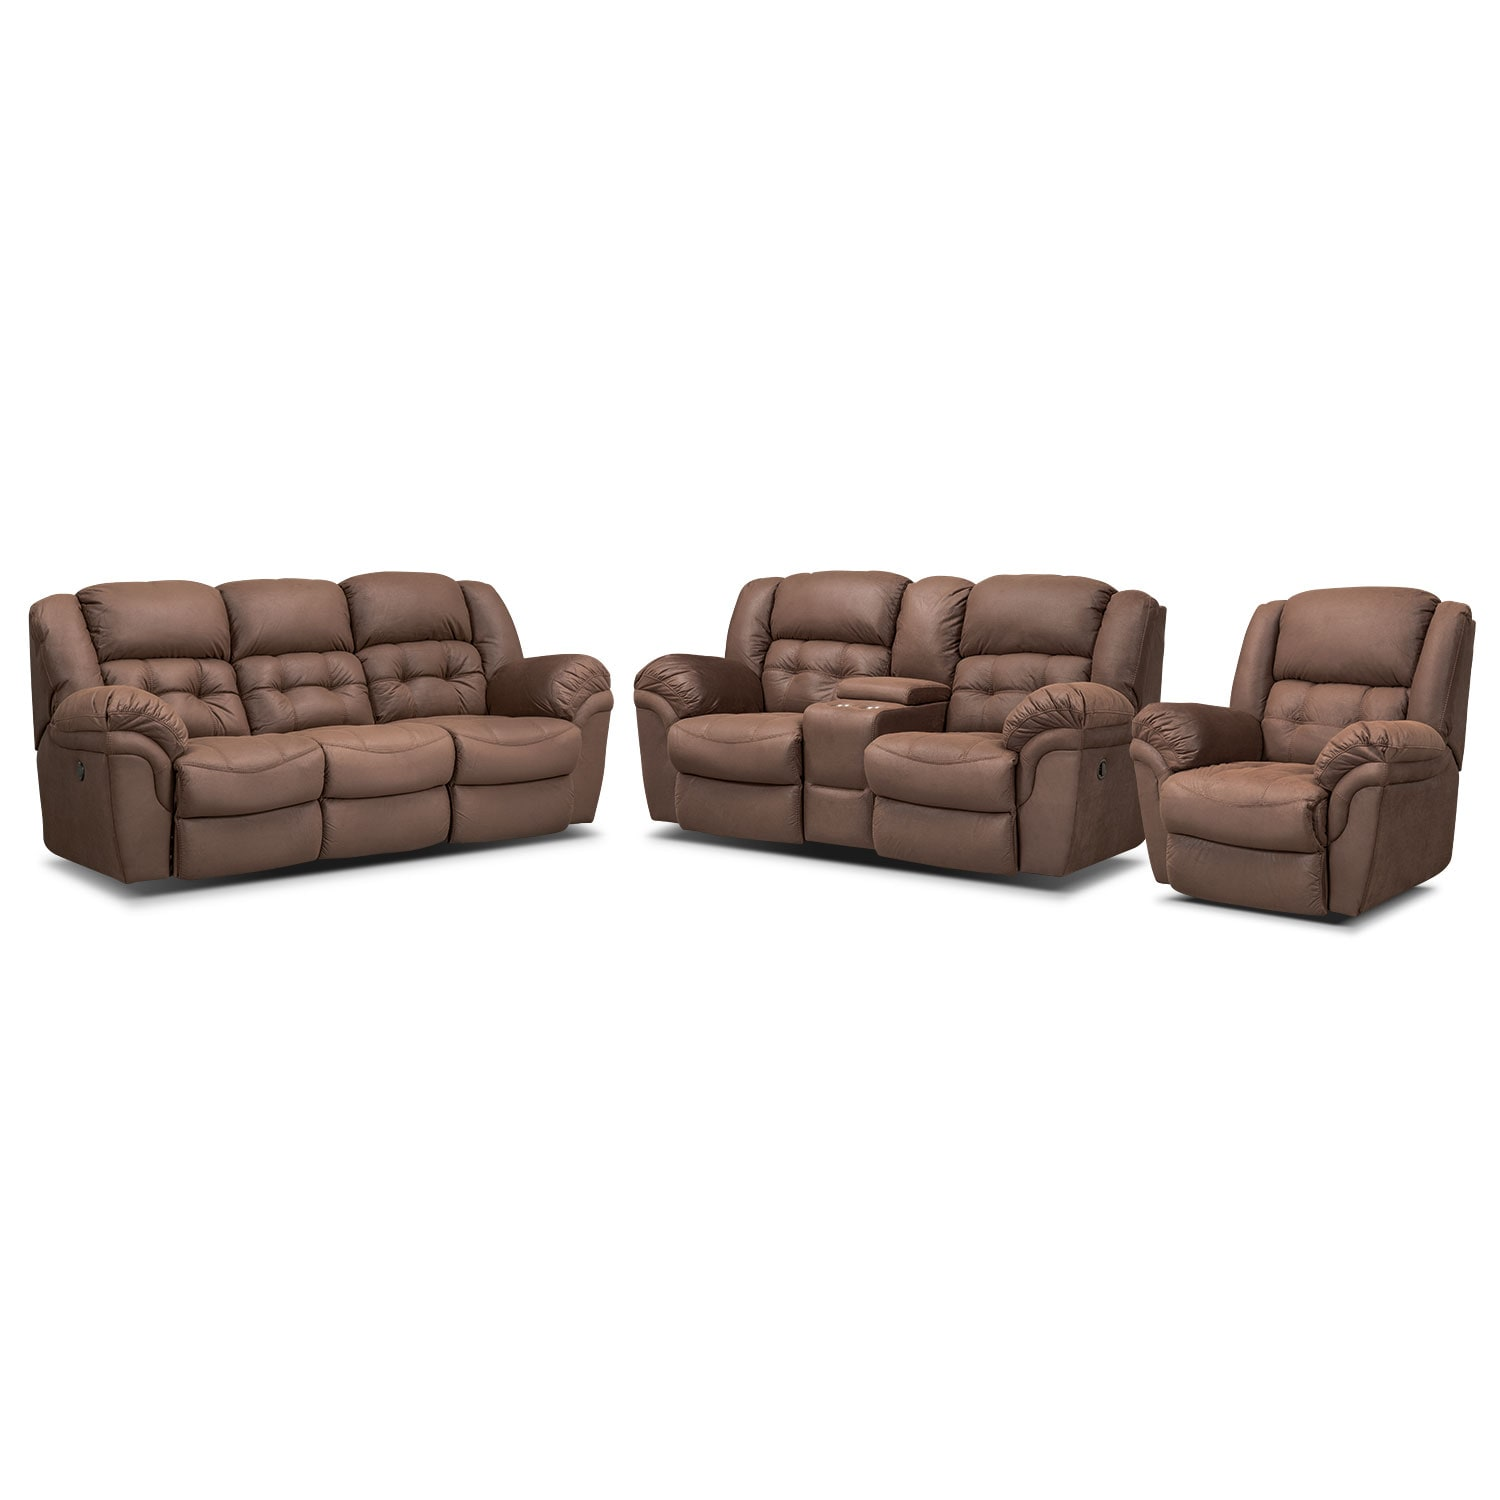 Lancer Chocolate Power Reclining Sofa, Reclining Loveseat w/ Console and Glider Recliner Set